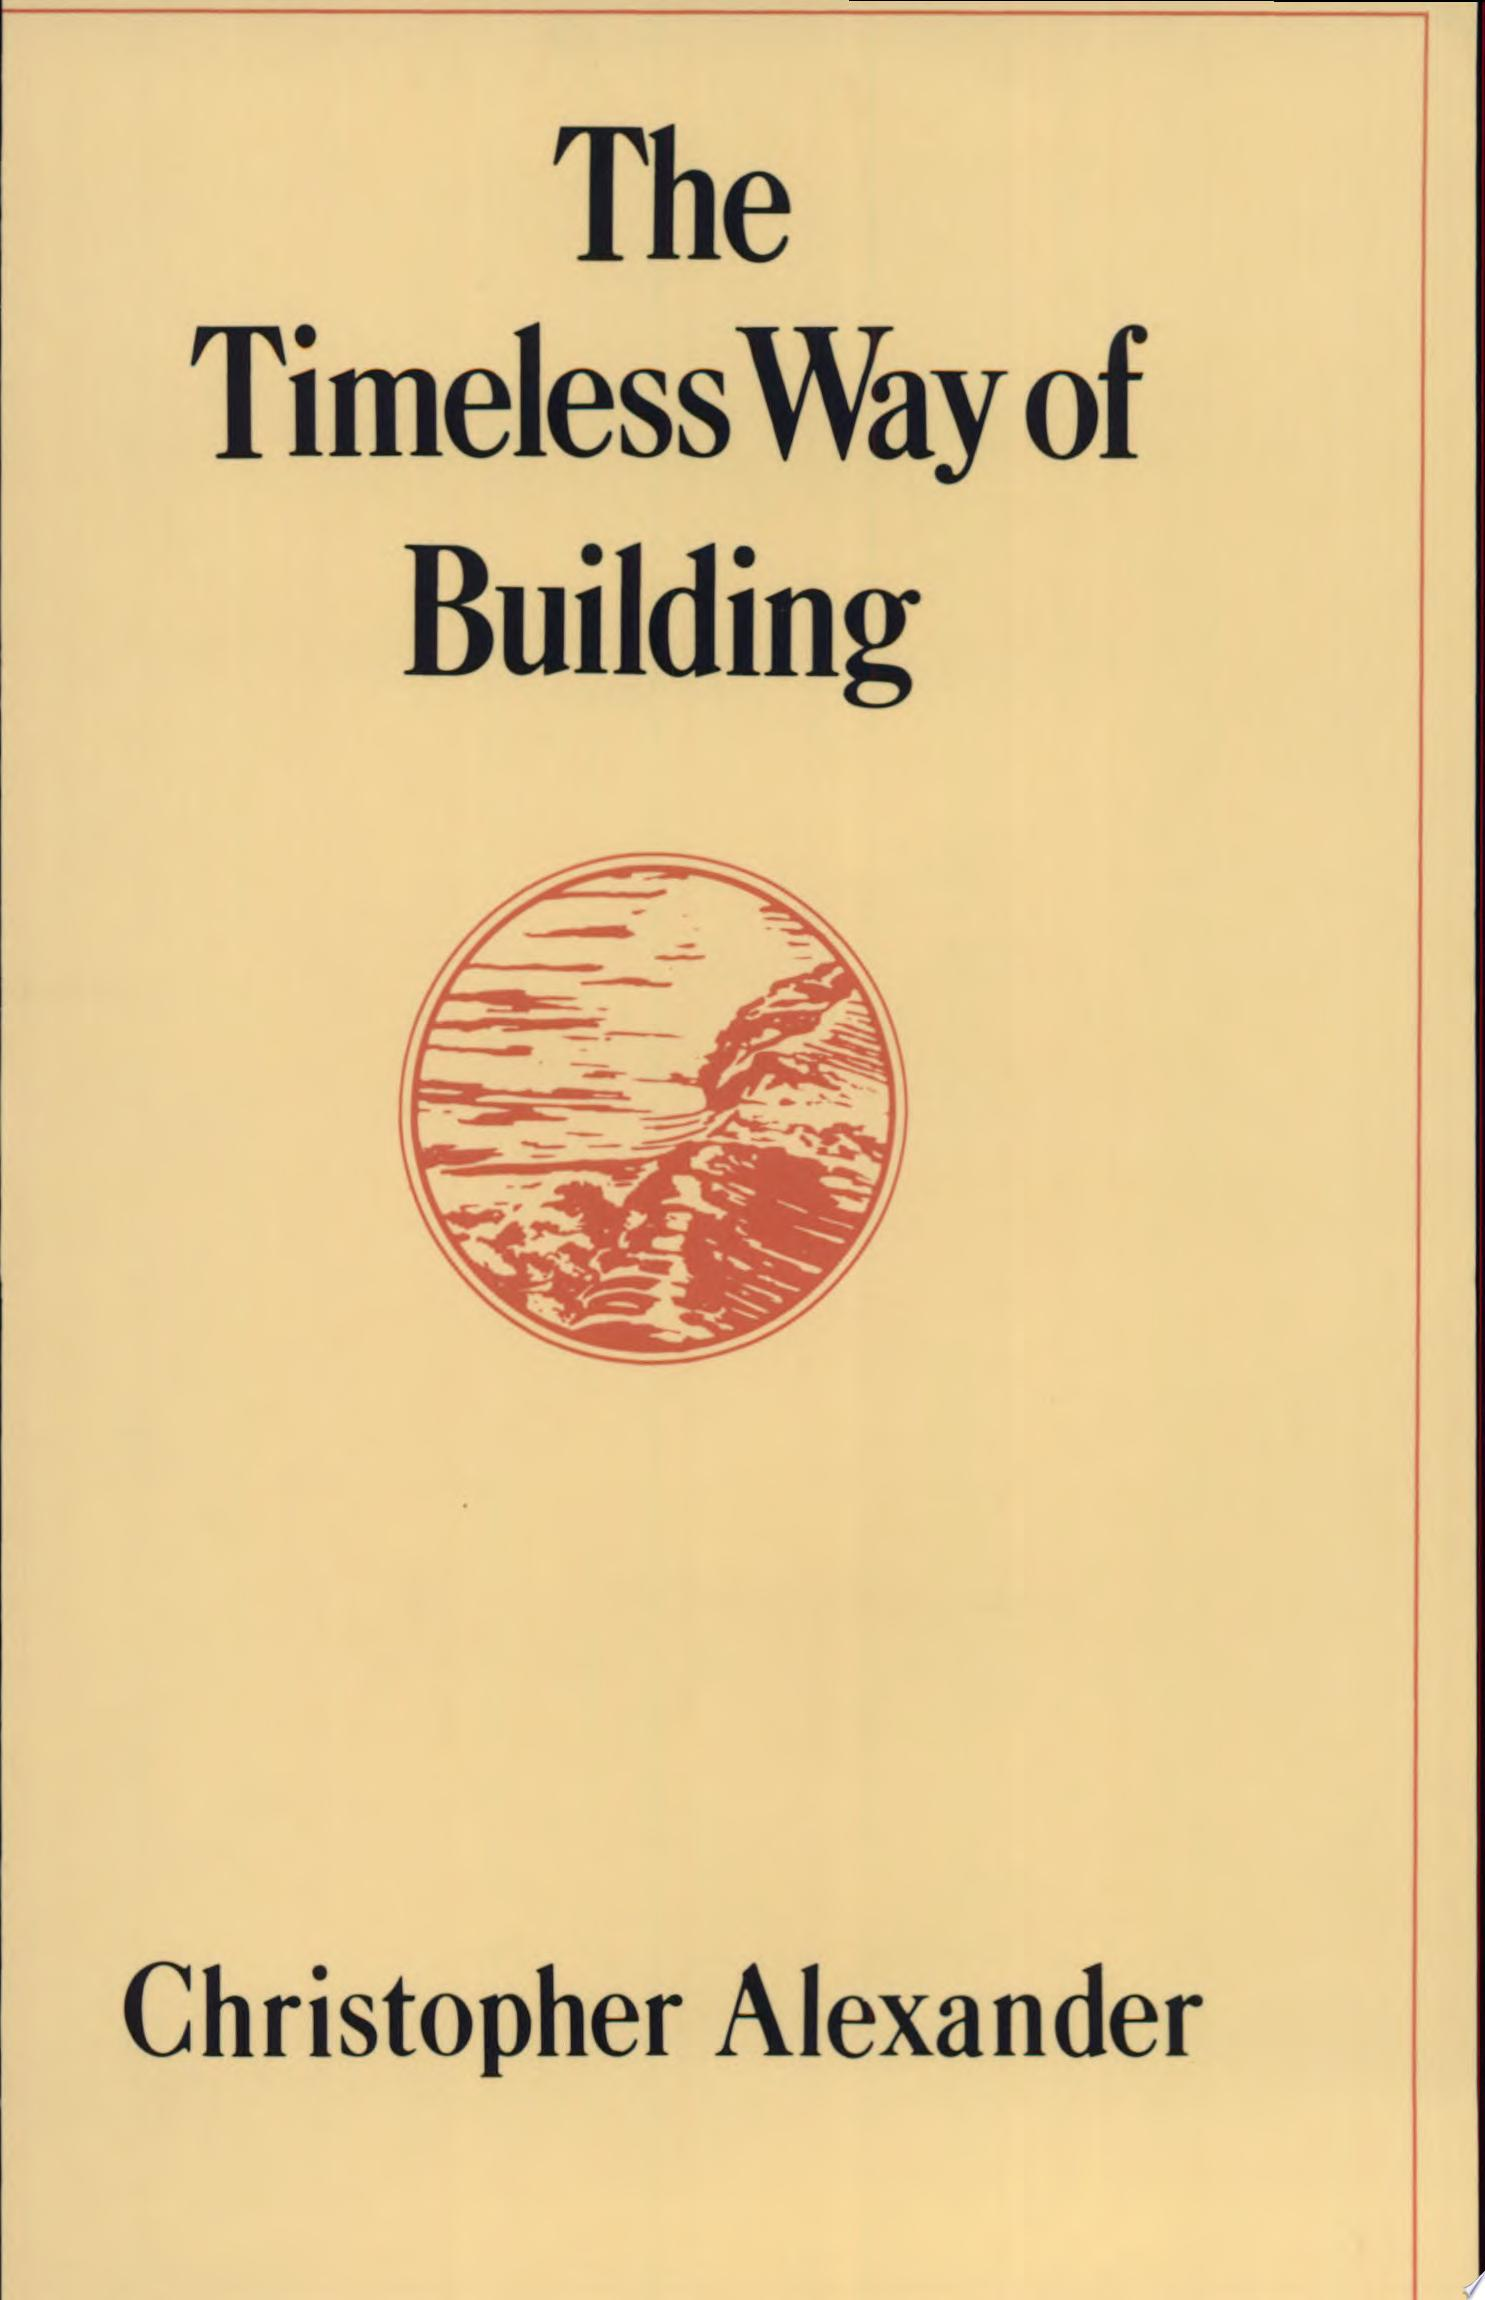 The Timeless Way of Building